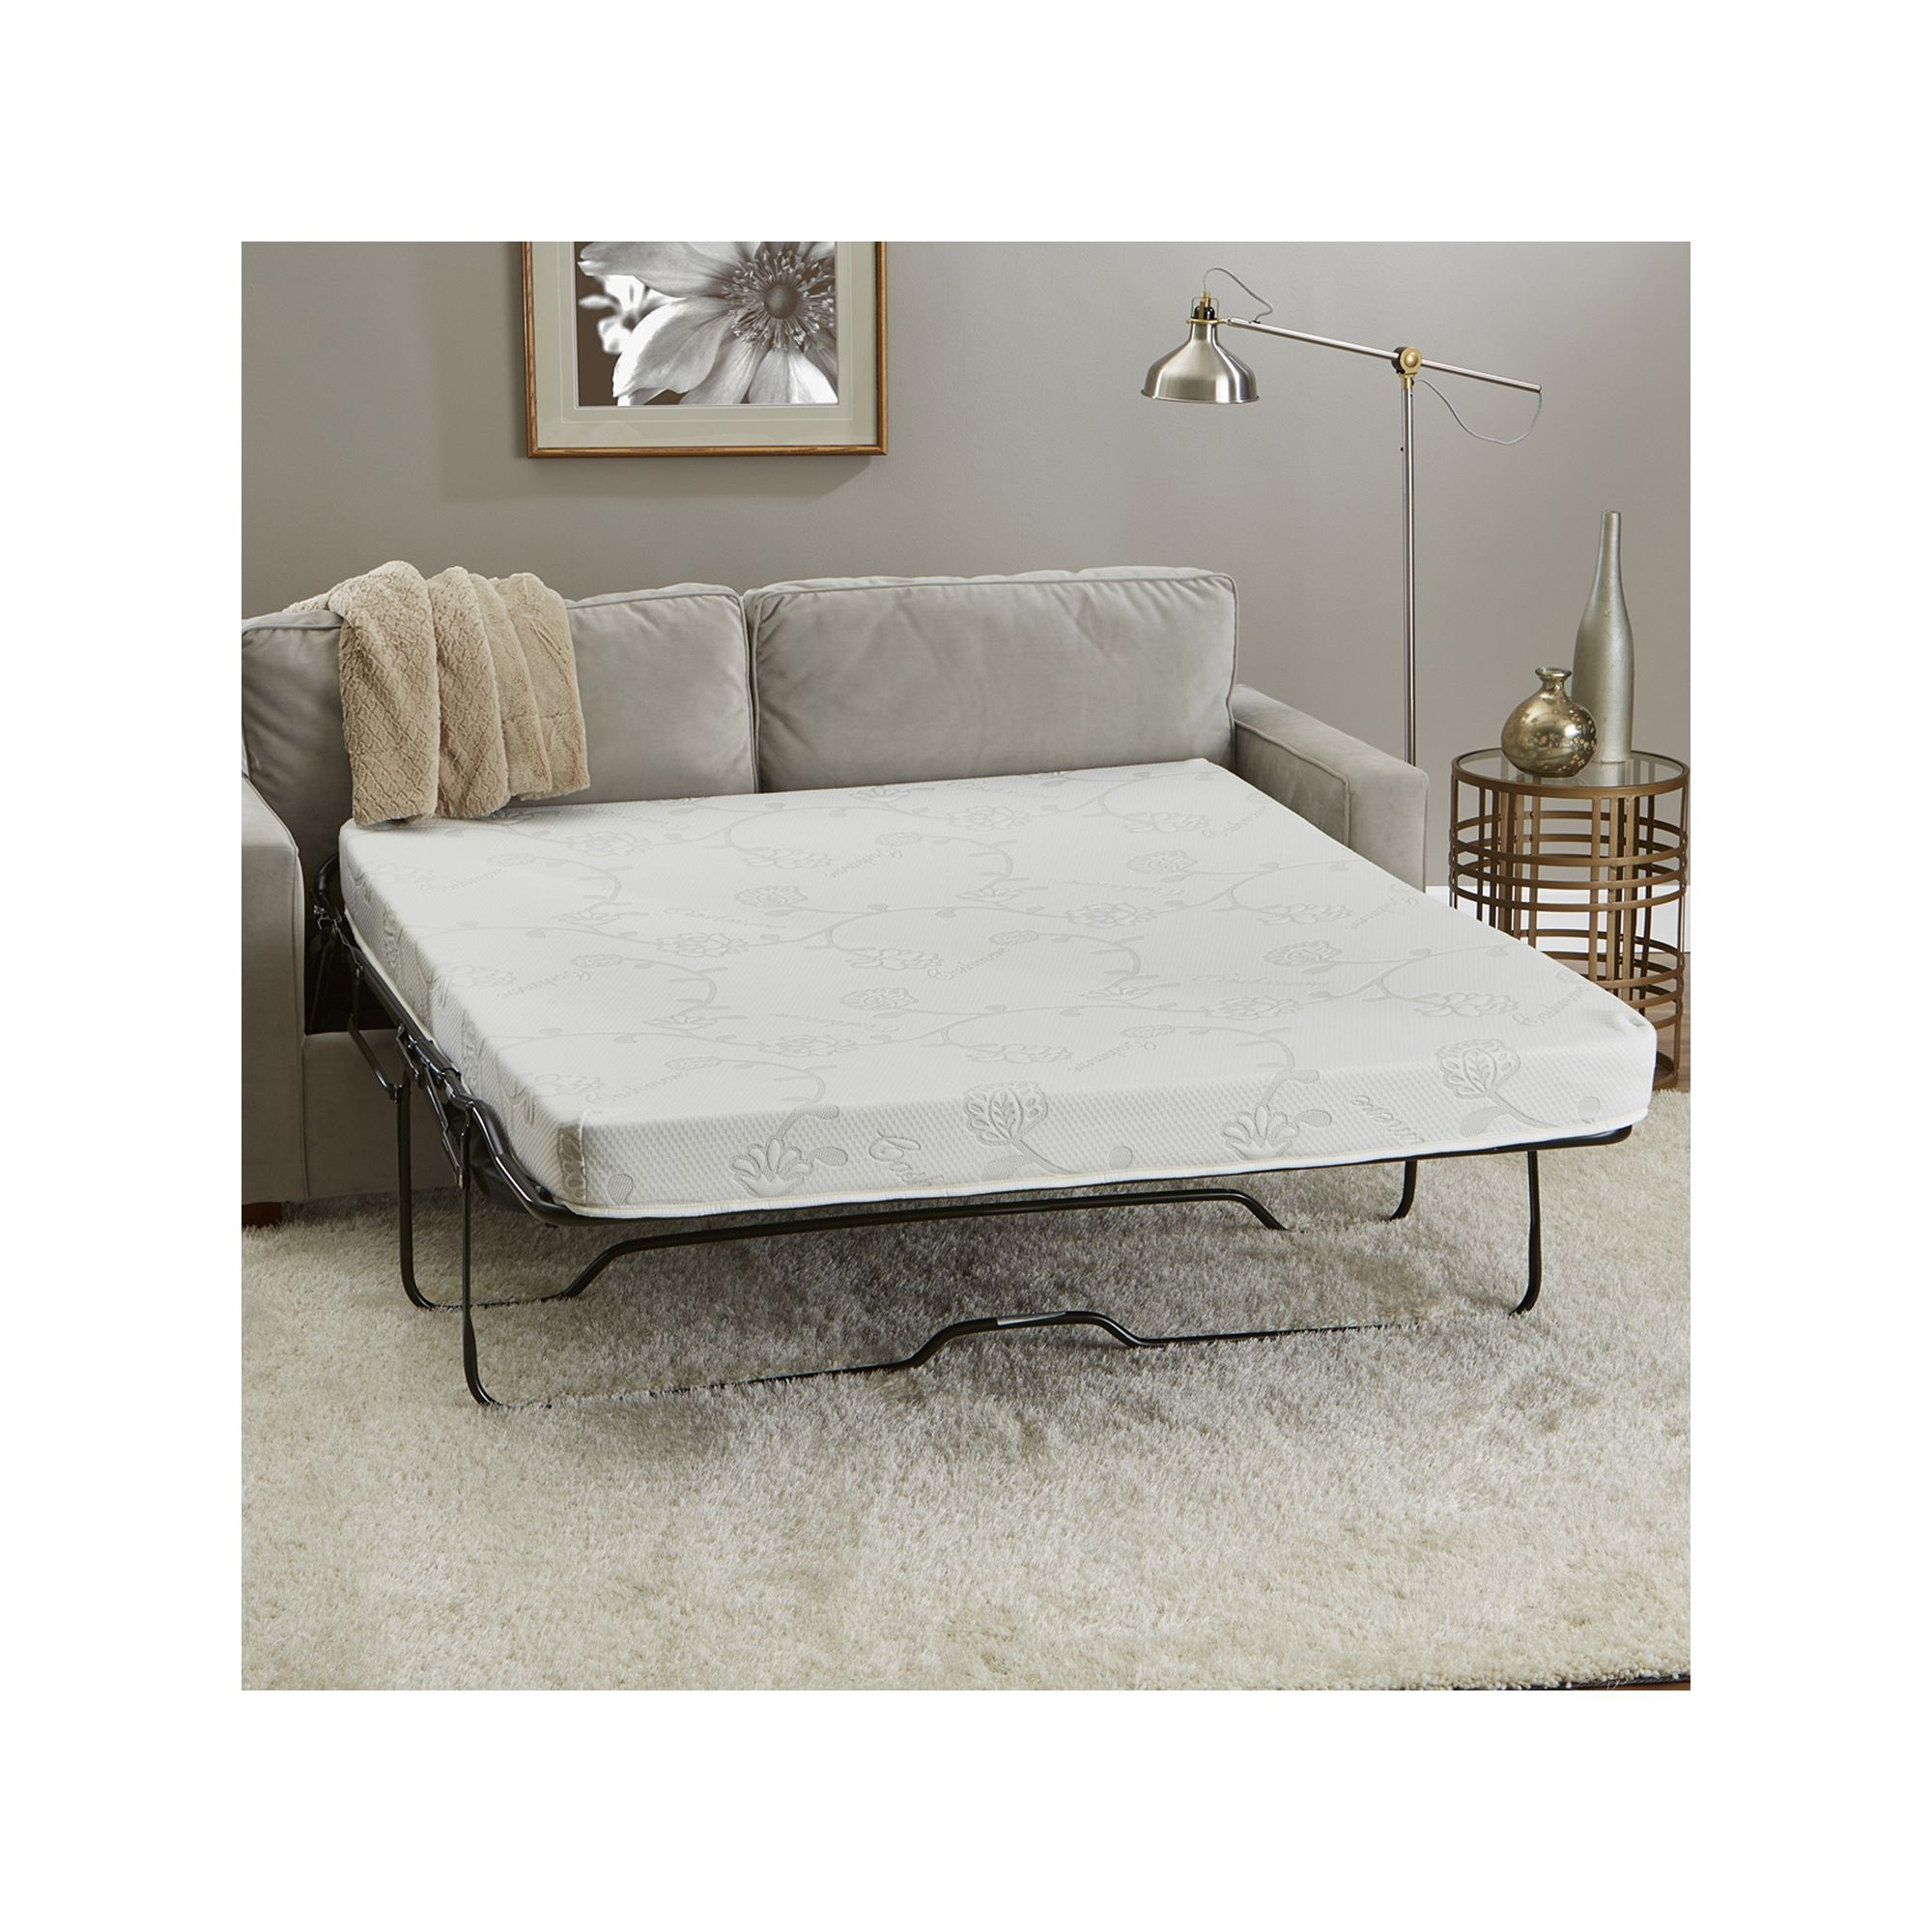 CertiPURUS 4.5inch Memory Foam Sofa Sleeper Mattress